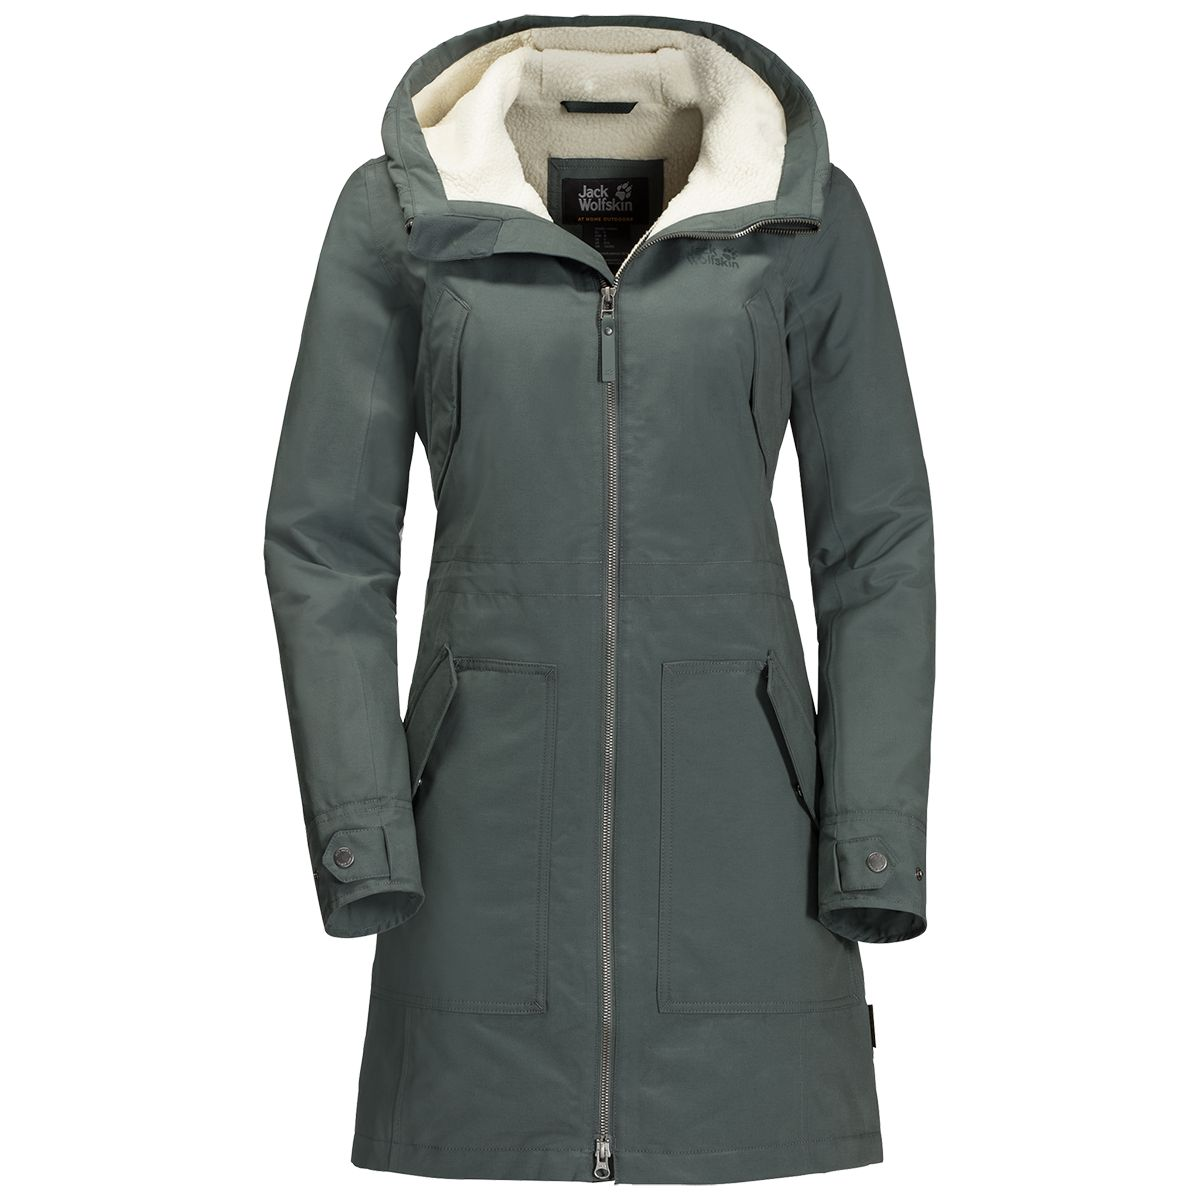 ROCKY POINT PARKA for women